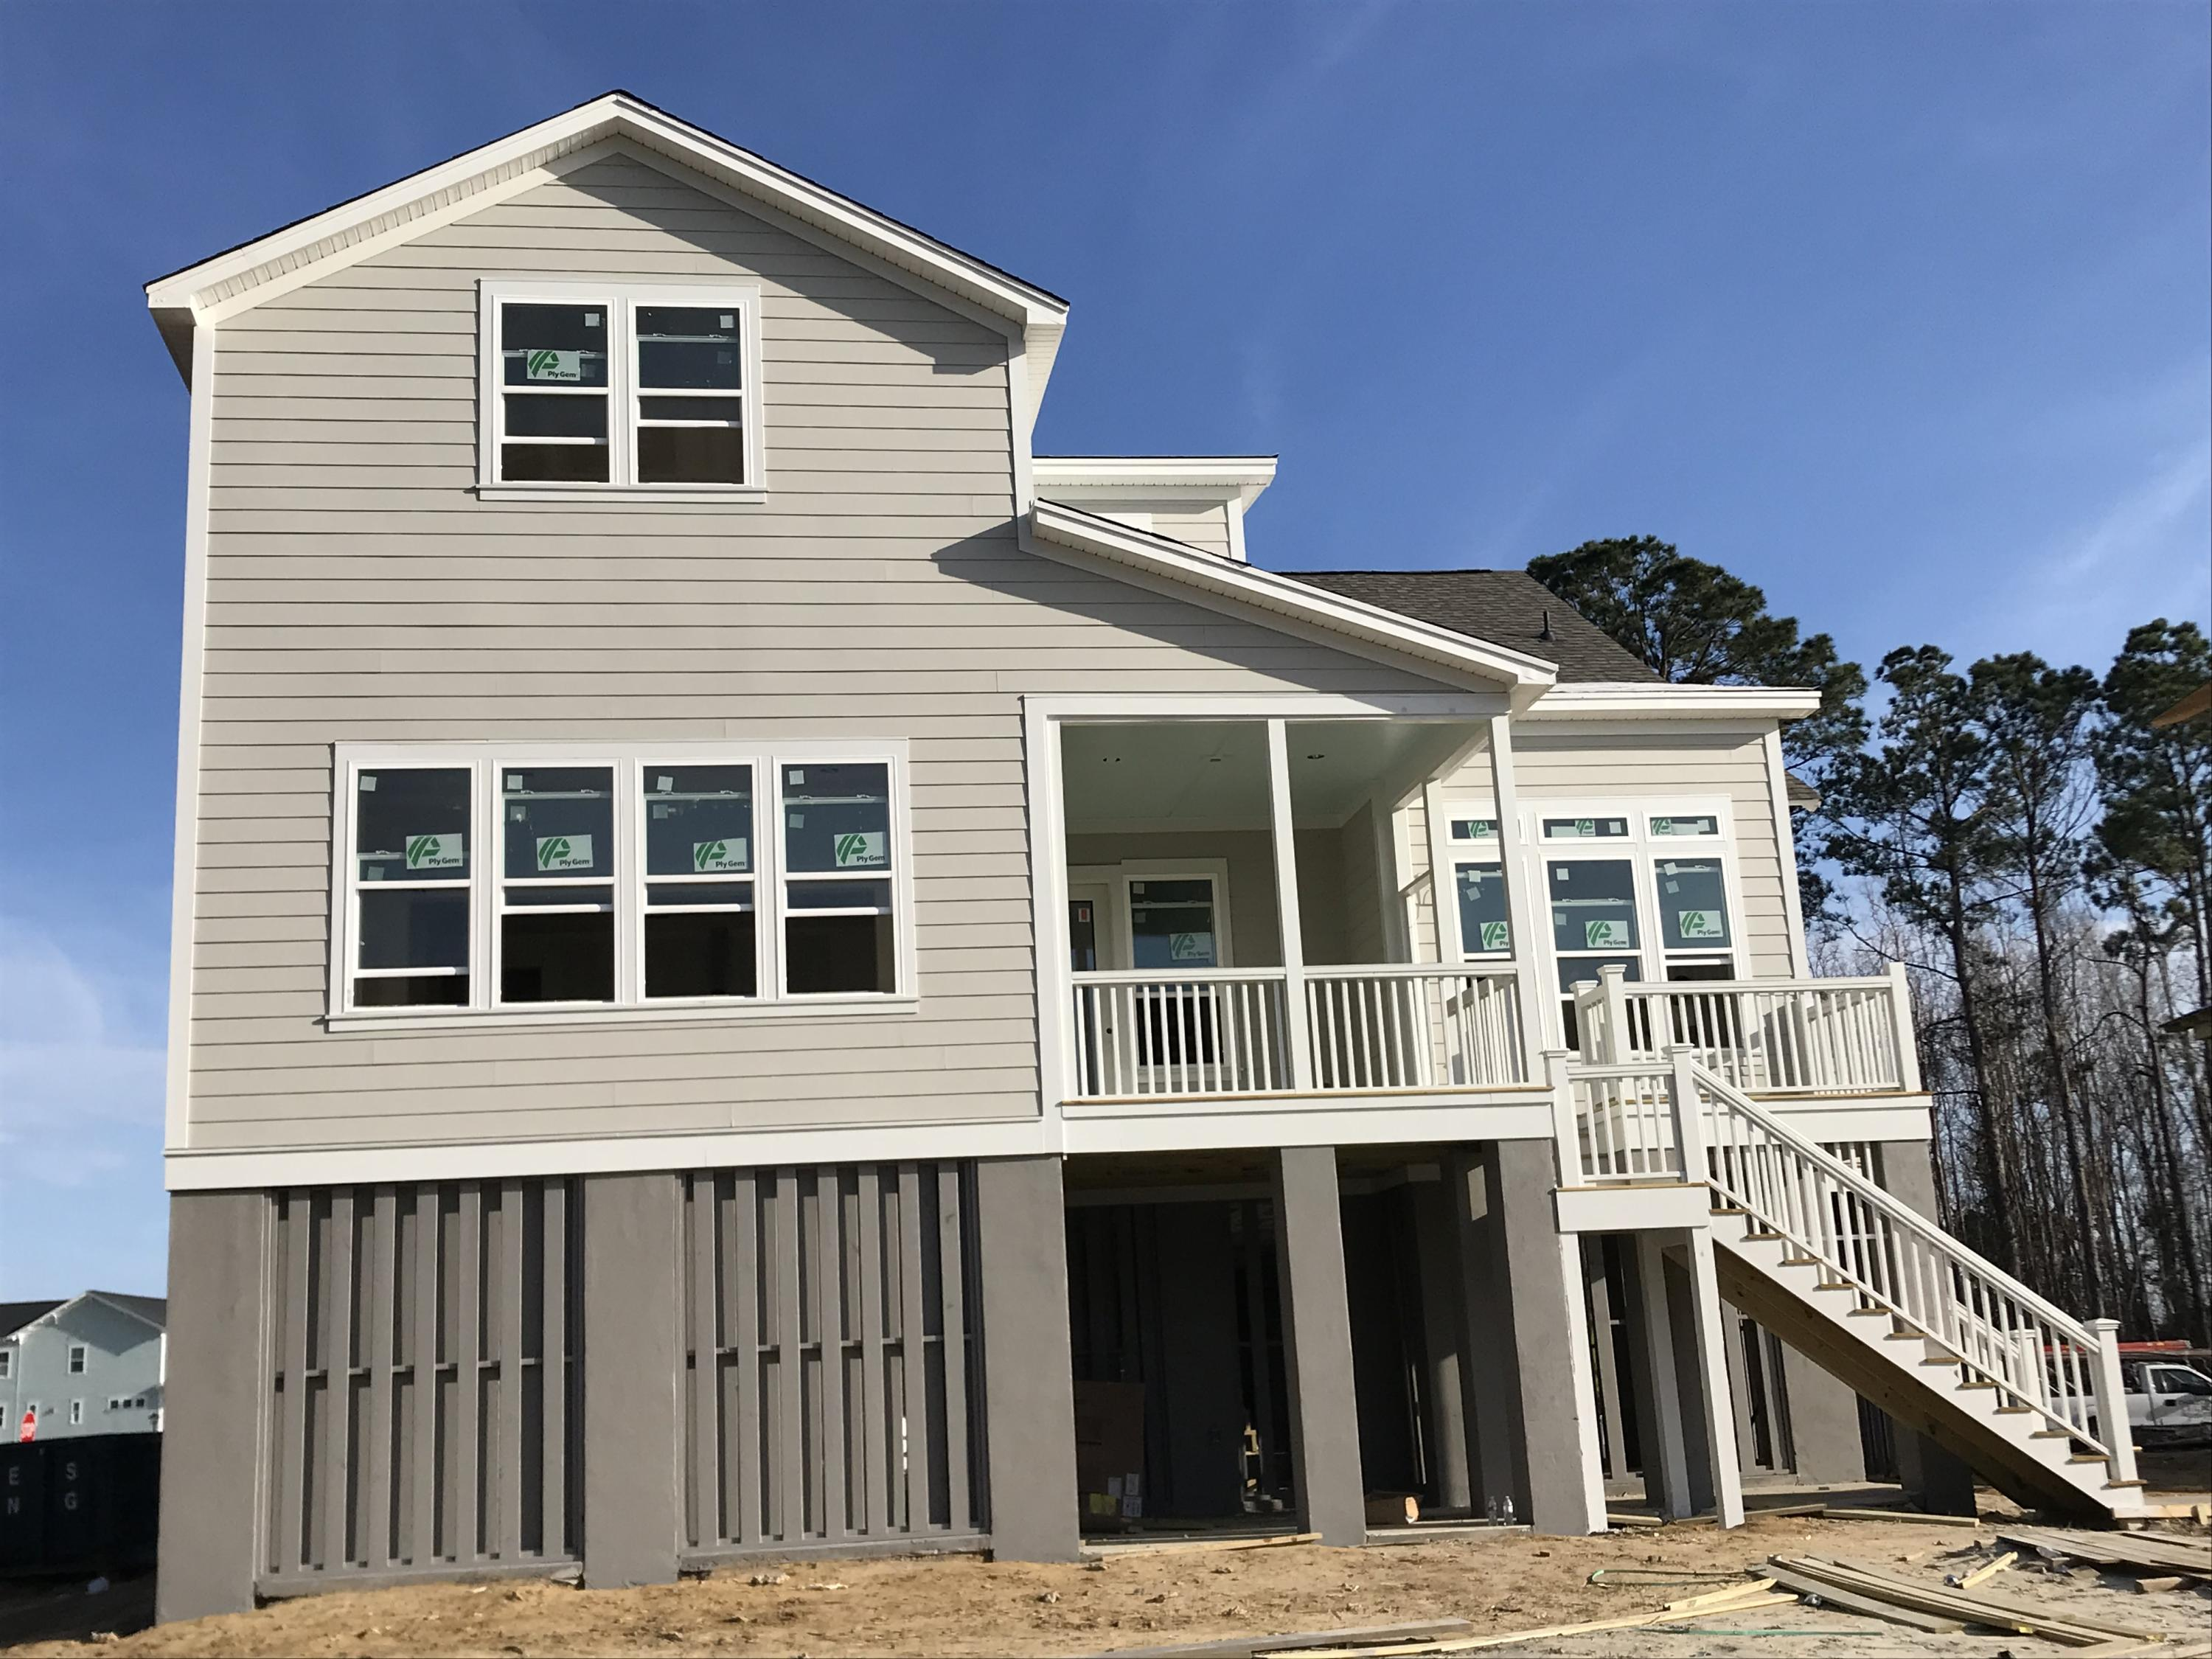 Stratton by the Sound Homes For Sale - 1483 Sheepshead, Mount Pleasant, SC - 0